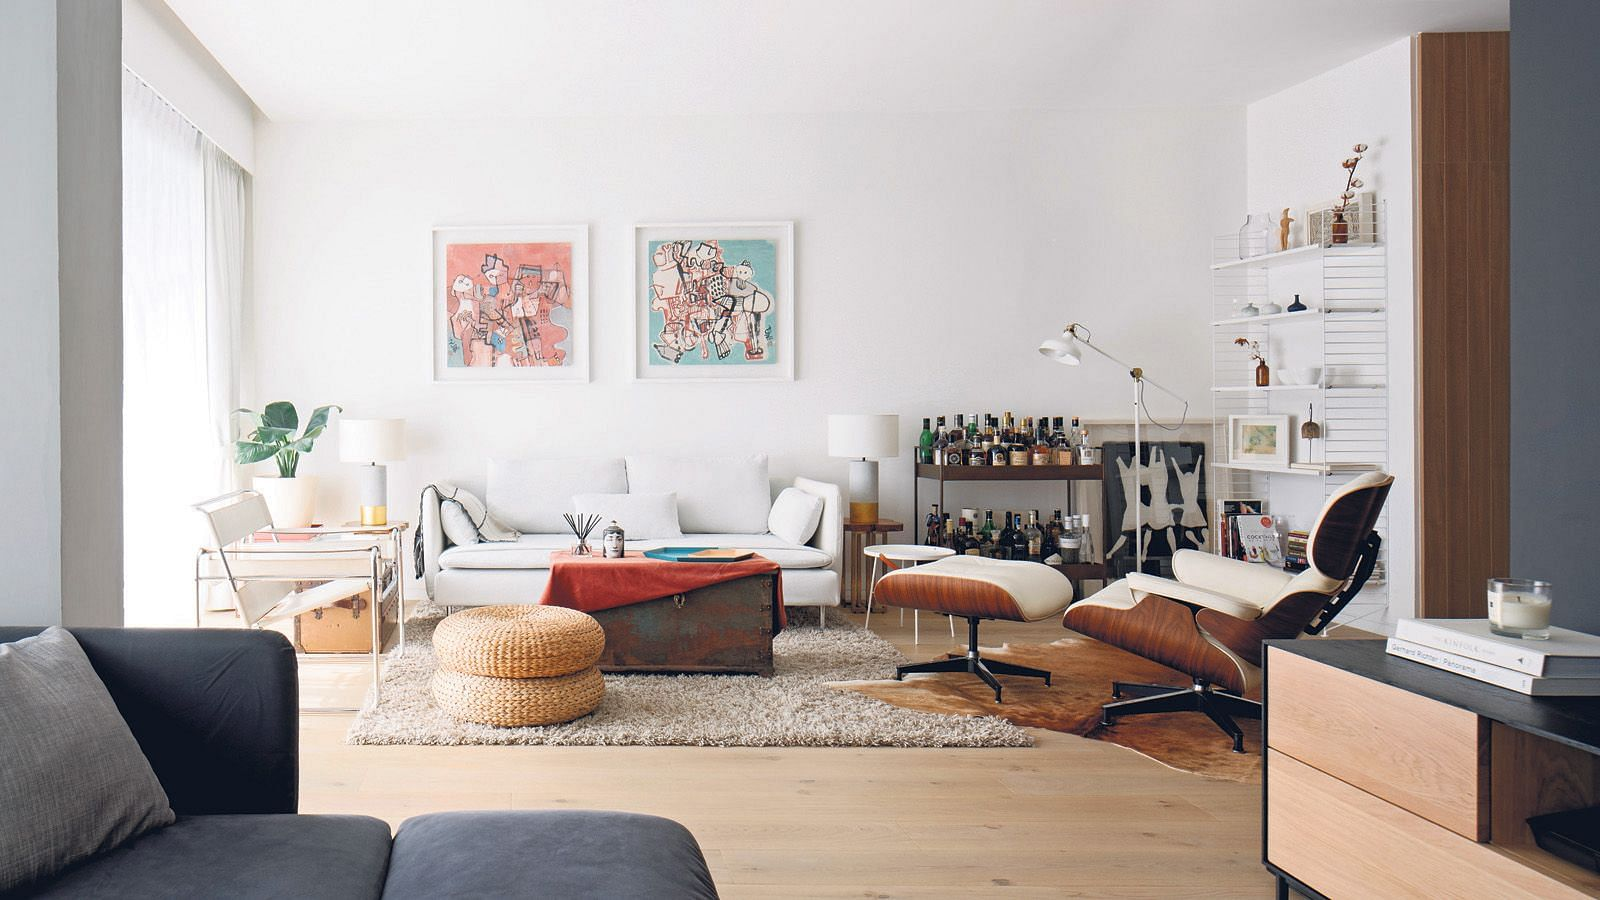 The All White Living Room Is A Bright Spot In The Apartment.